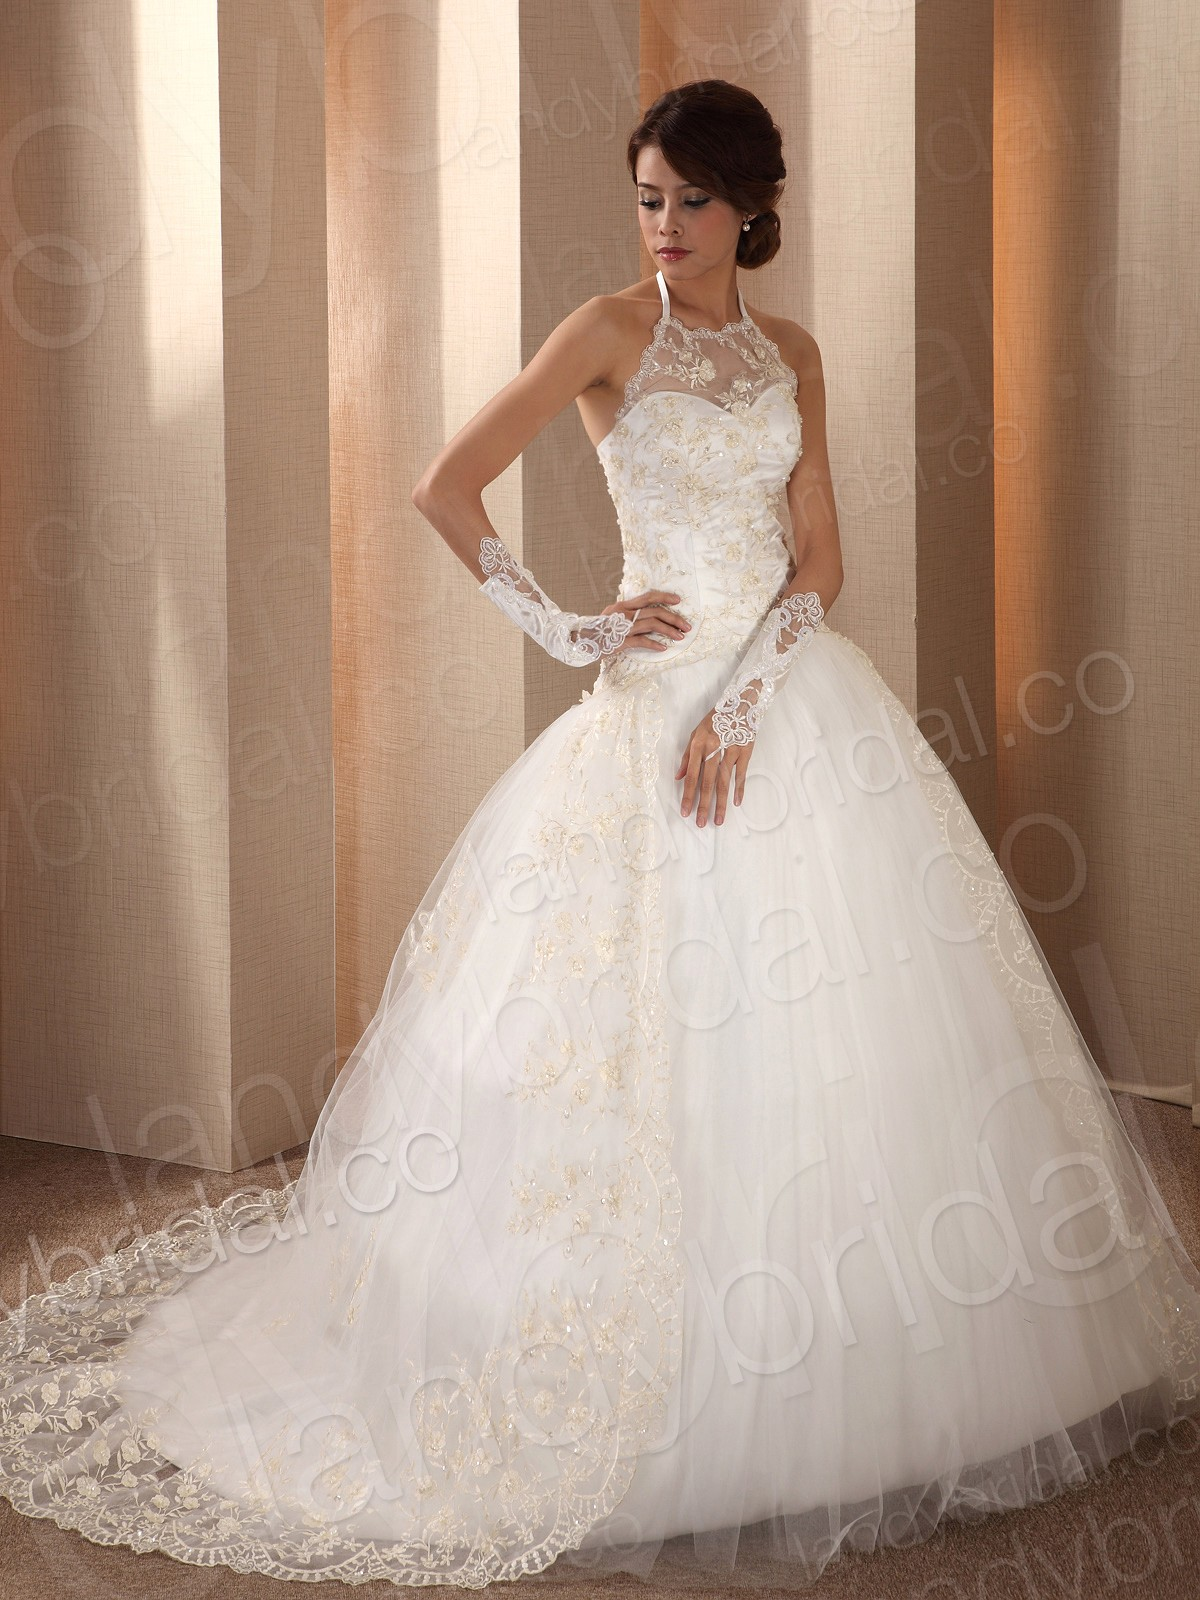 lace ball gown wedding dress with gloves